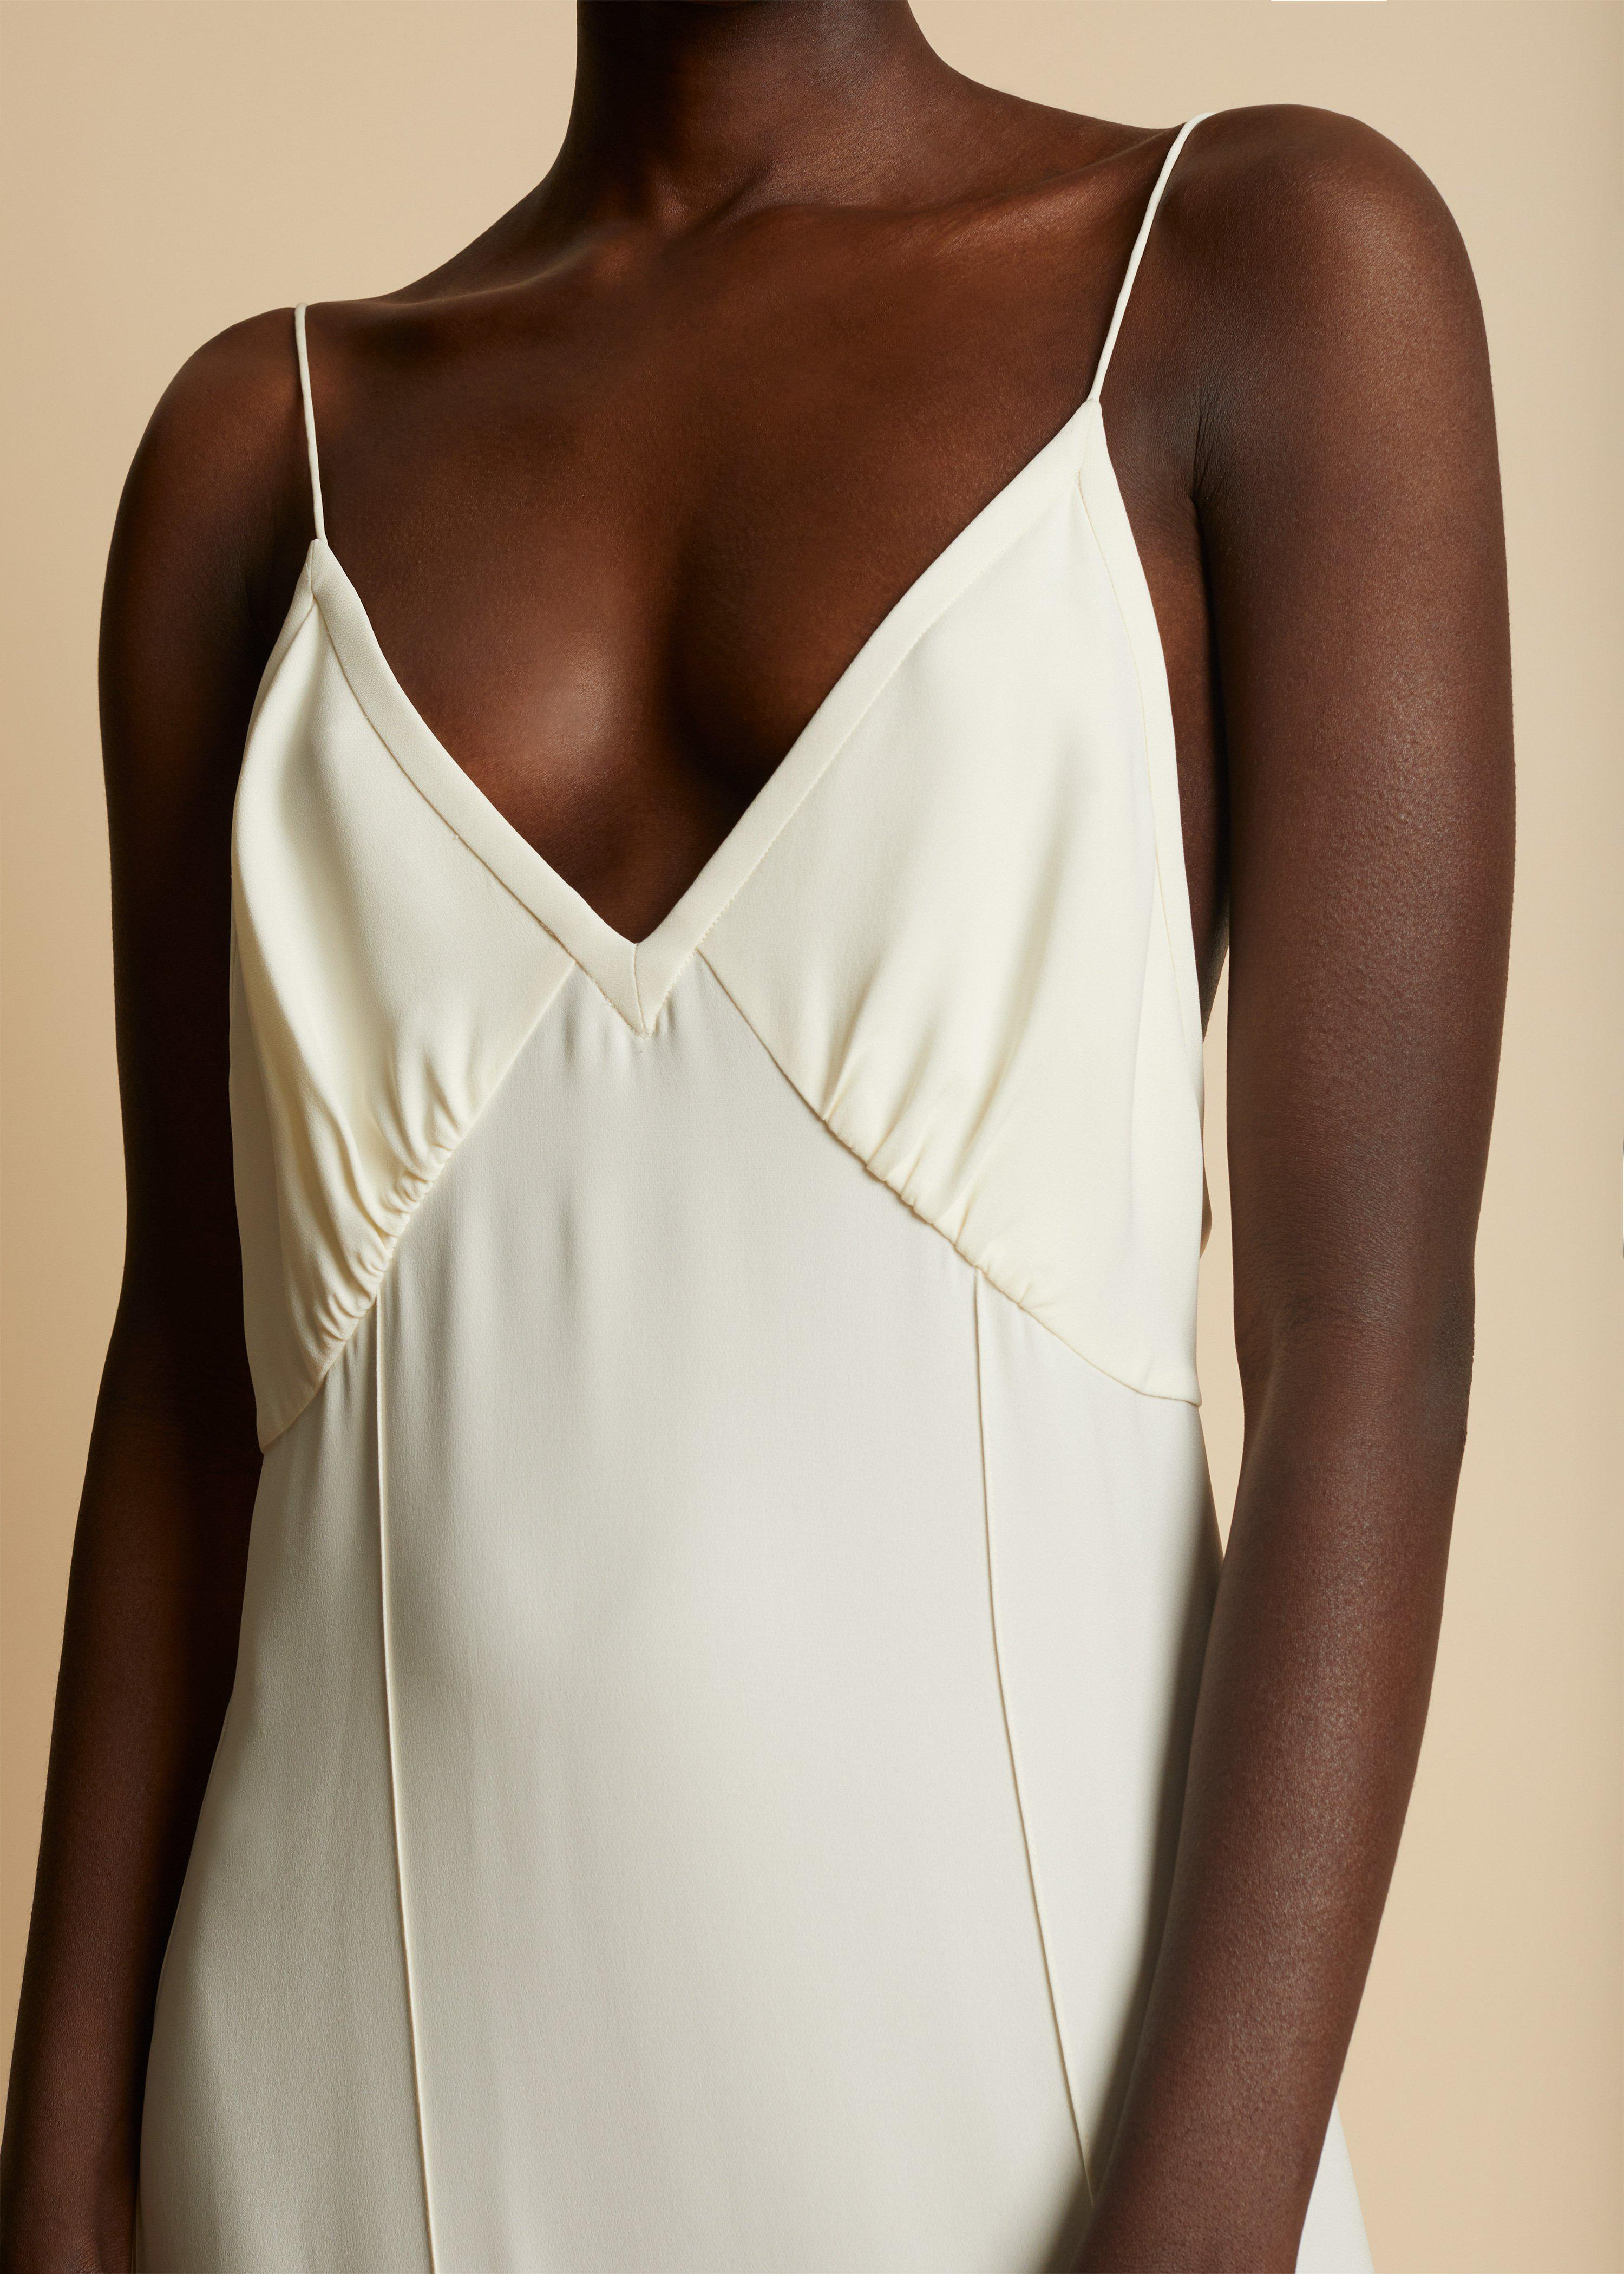 The Myrtle Dress in Ivory 4